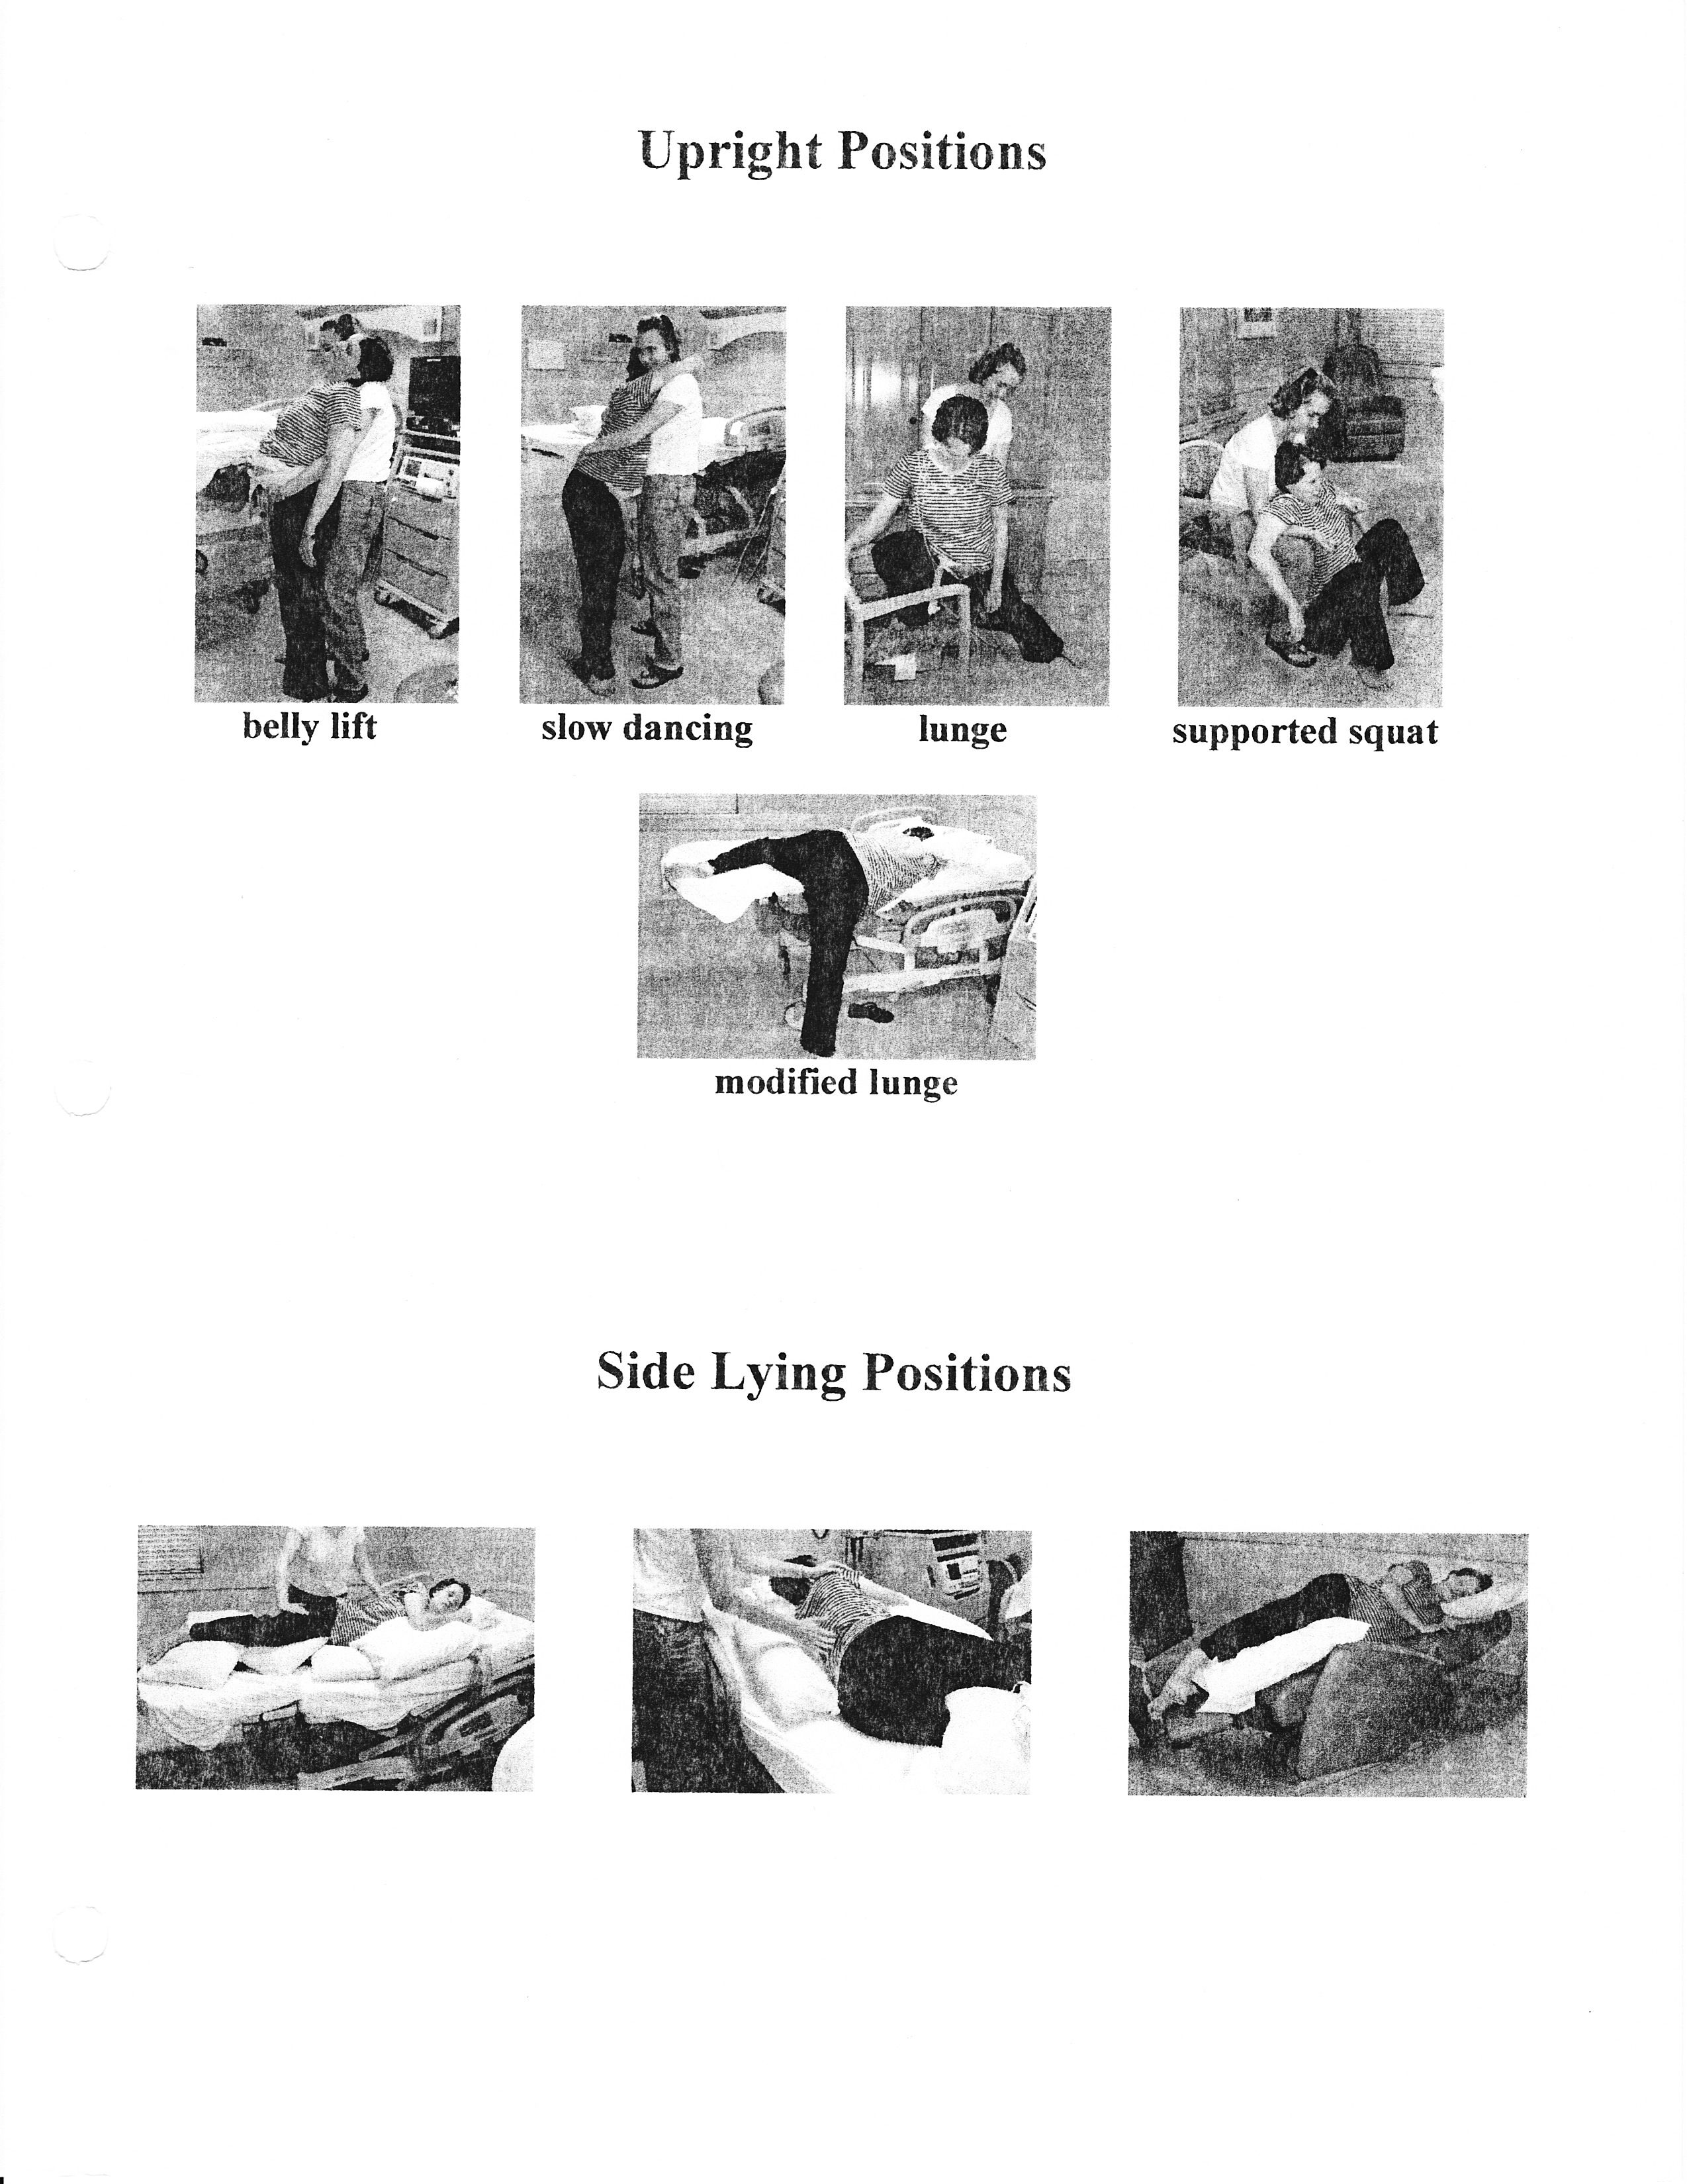 Labor Positions 2 With Images